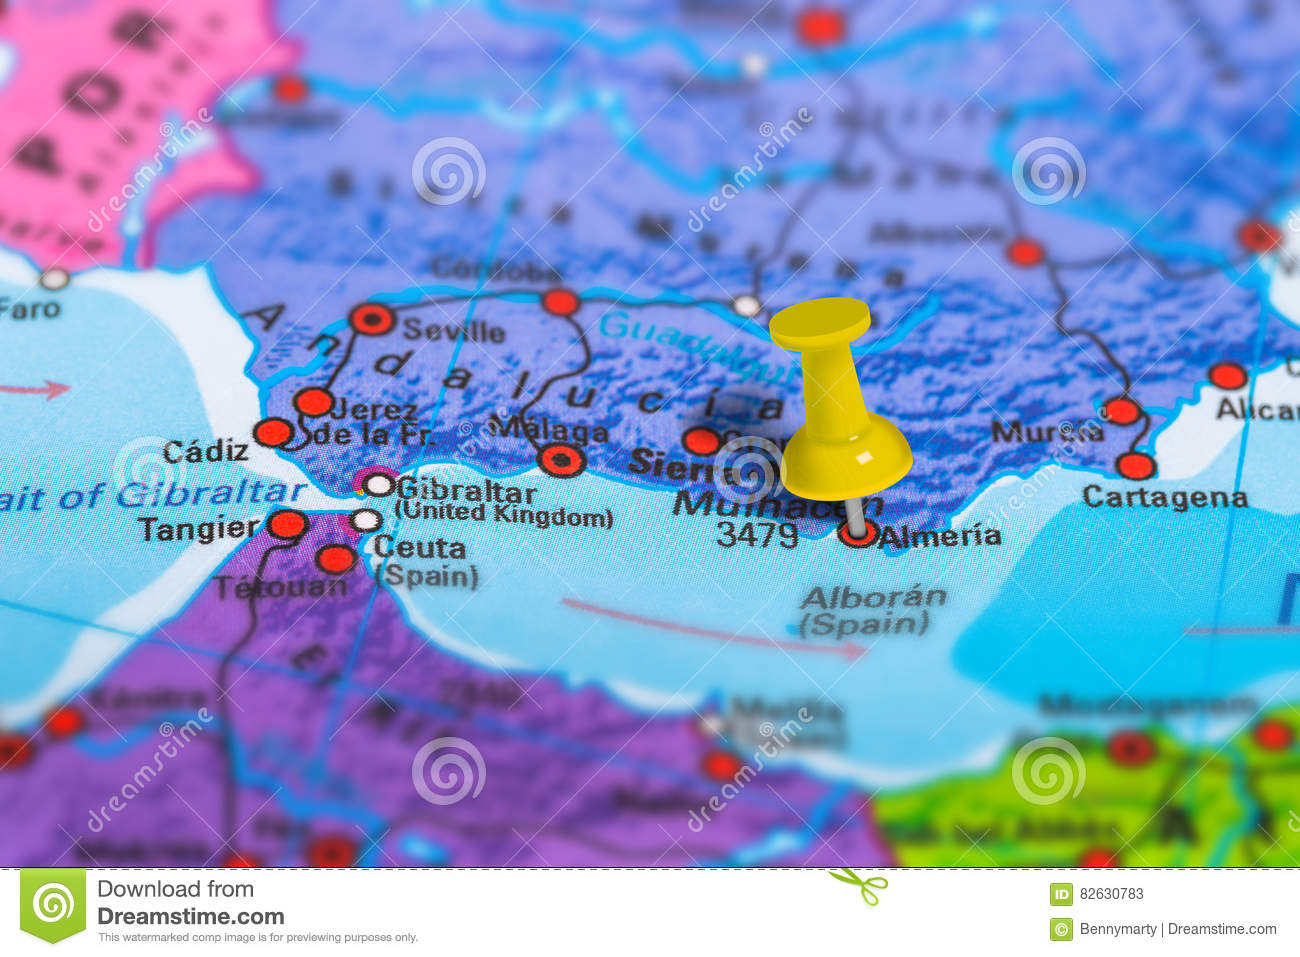 Map Of Spain Almeria.Almeria Spain Map Stock Image Image Of Guidance Concept 82630783